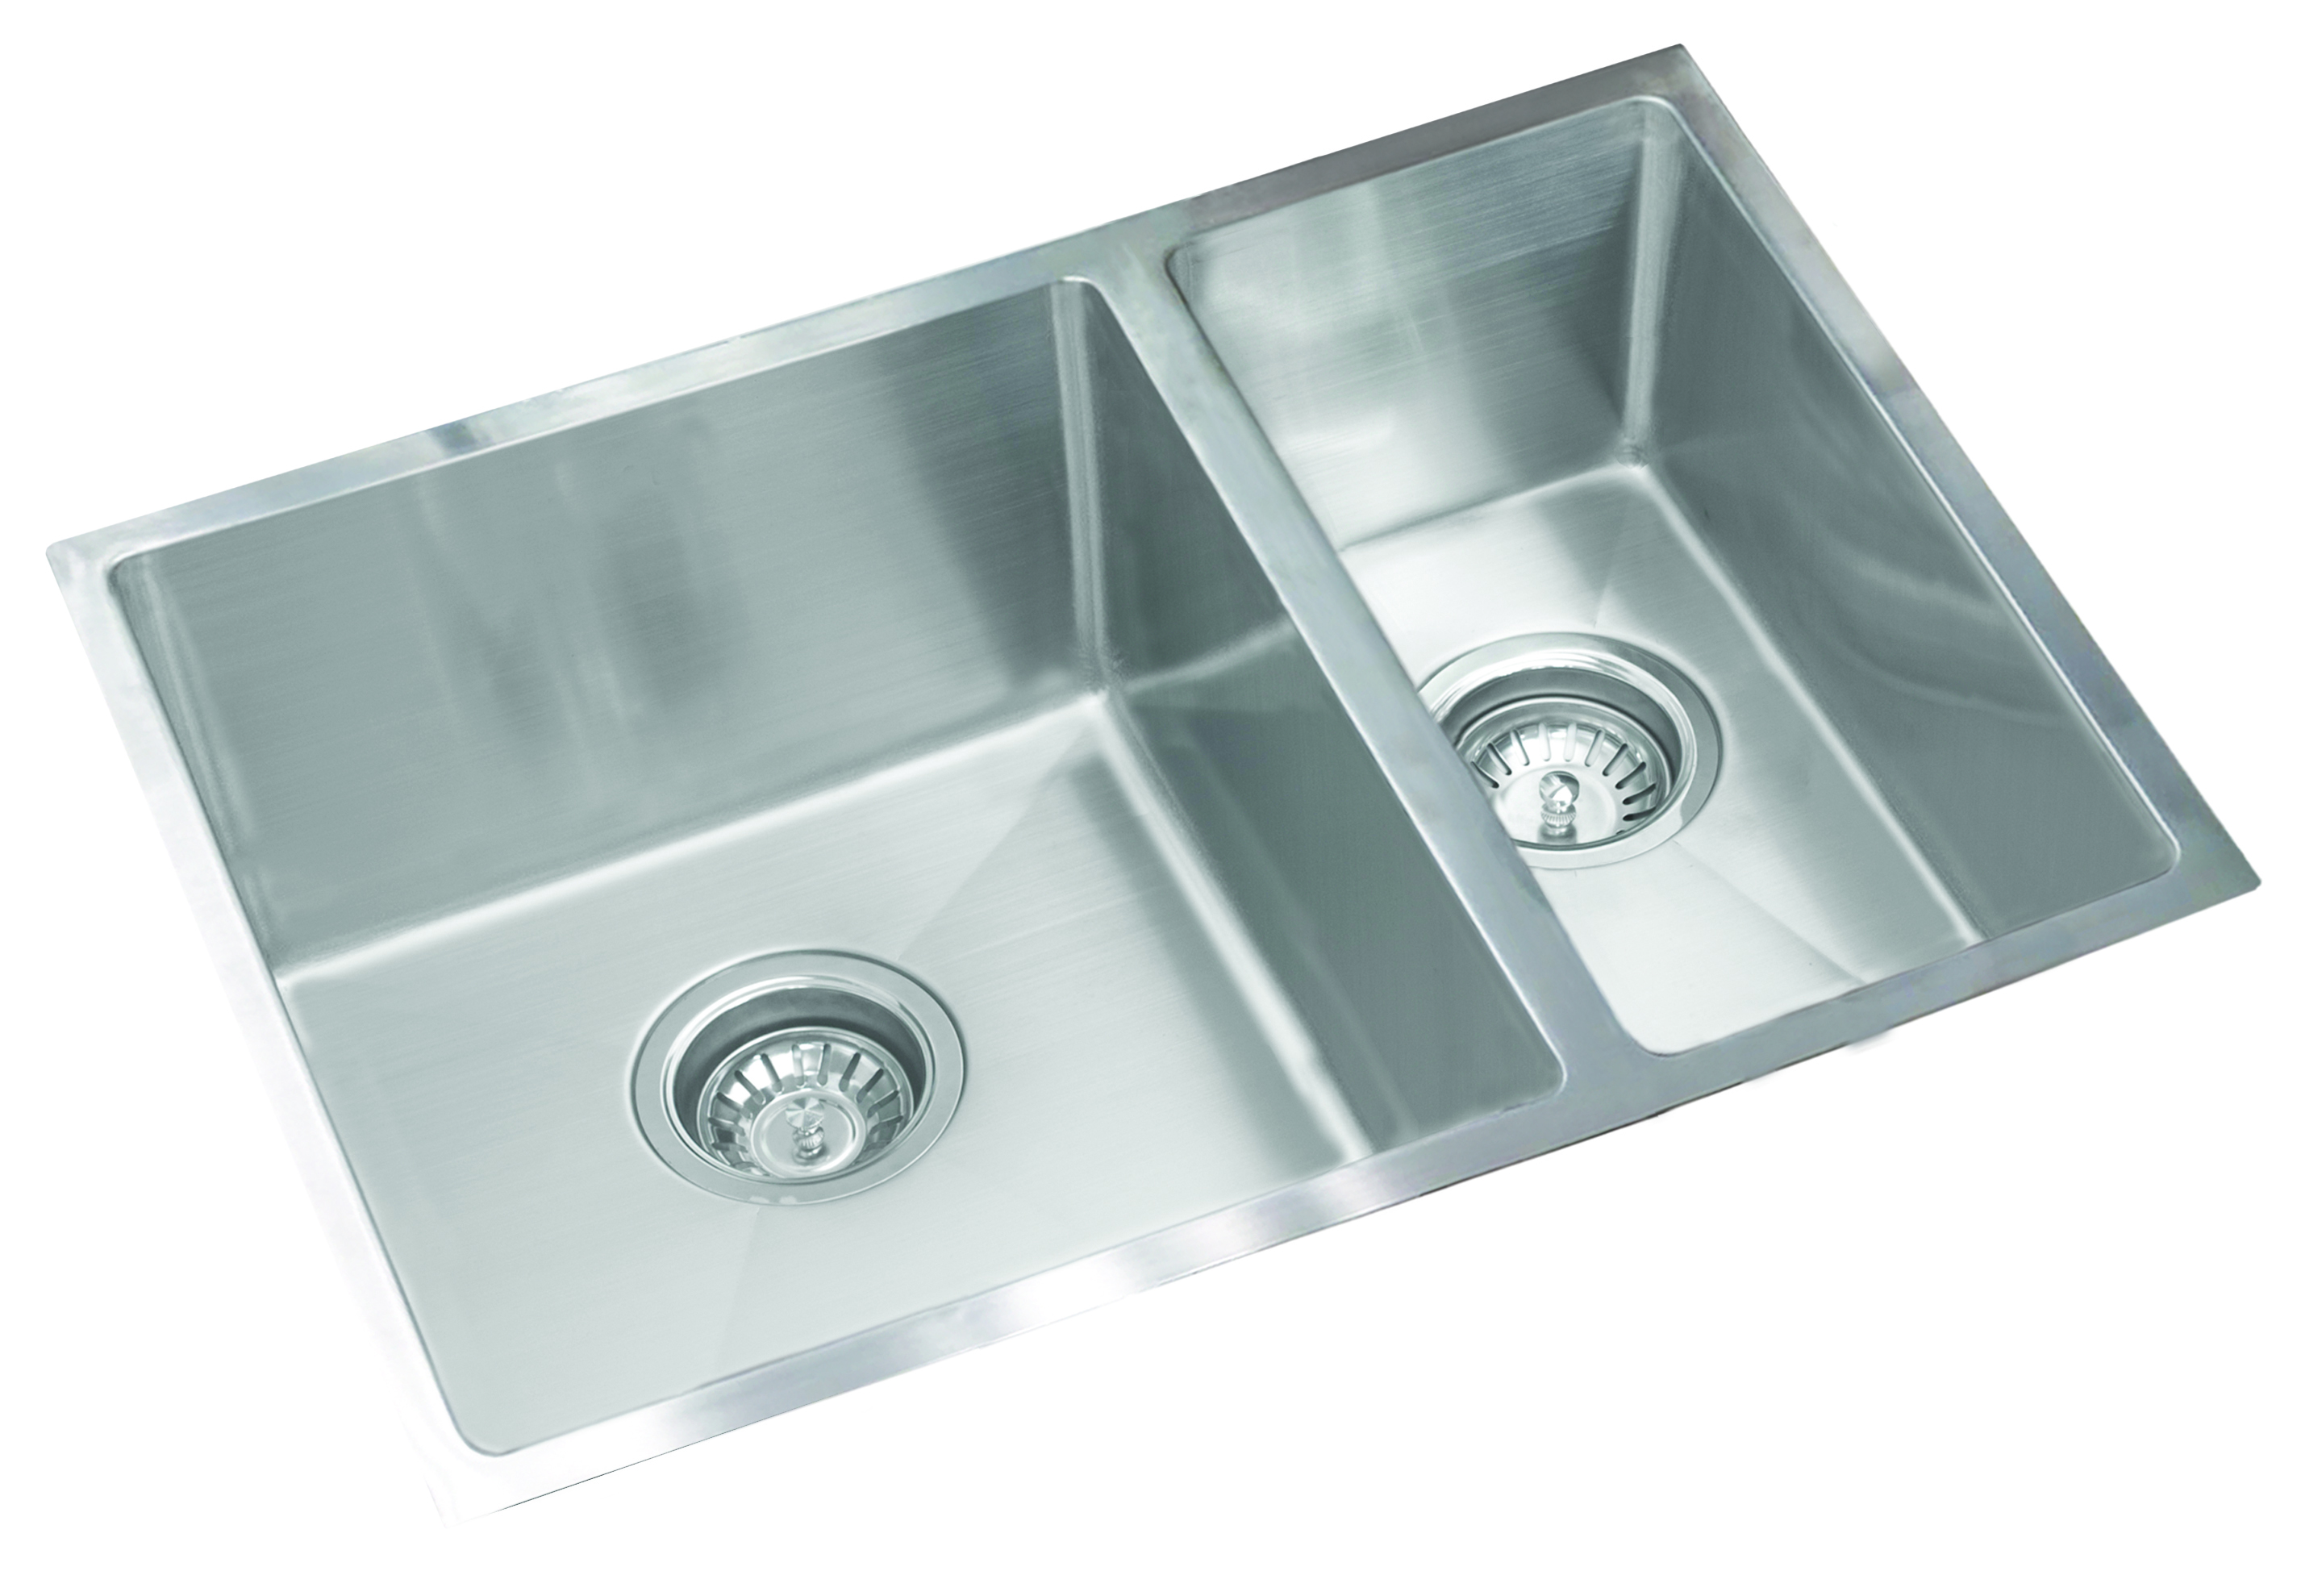 Squareline Plus Sink Range